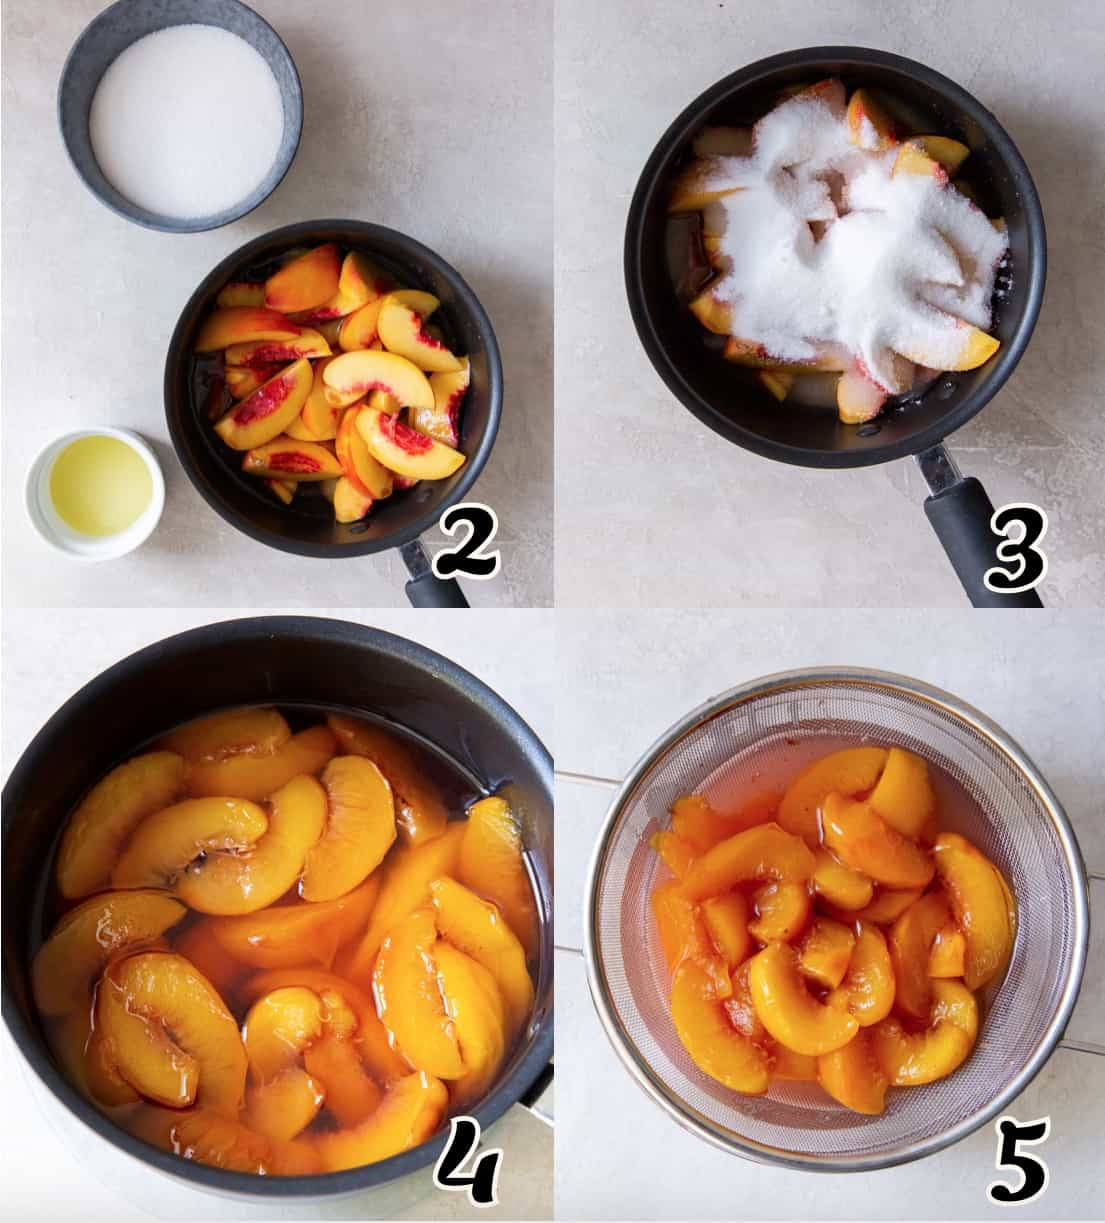 Making the Peach Syrup